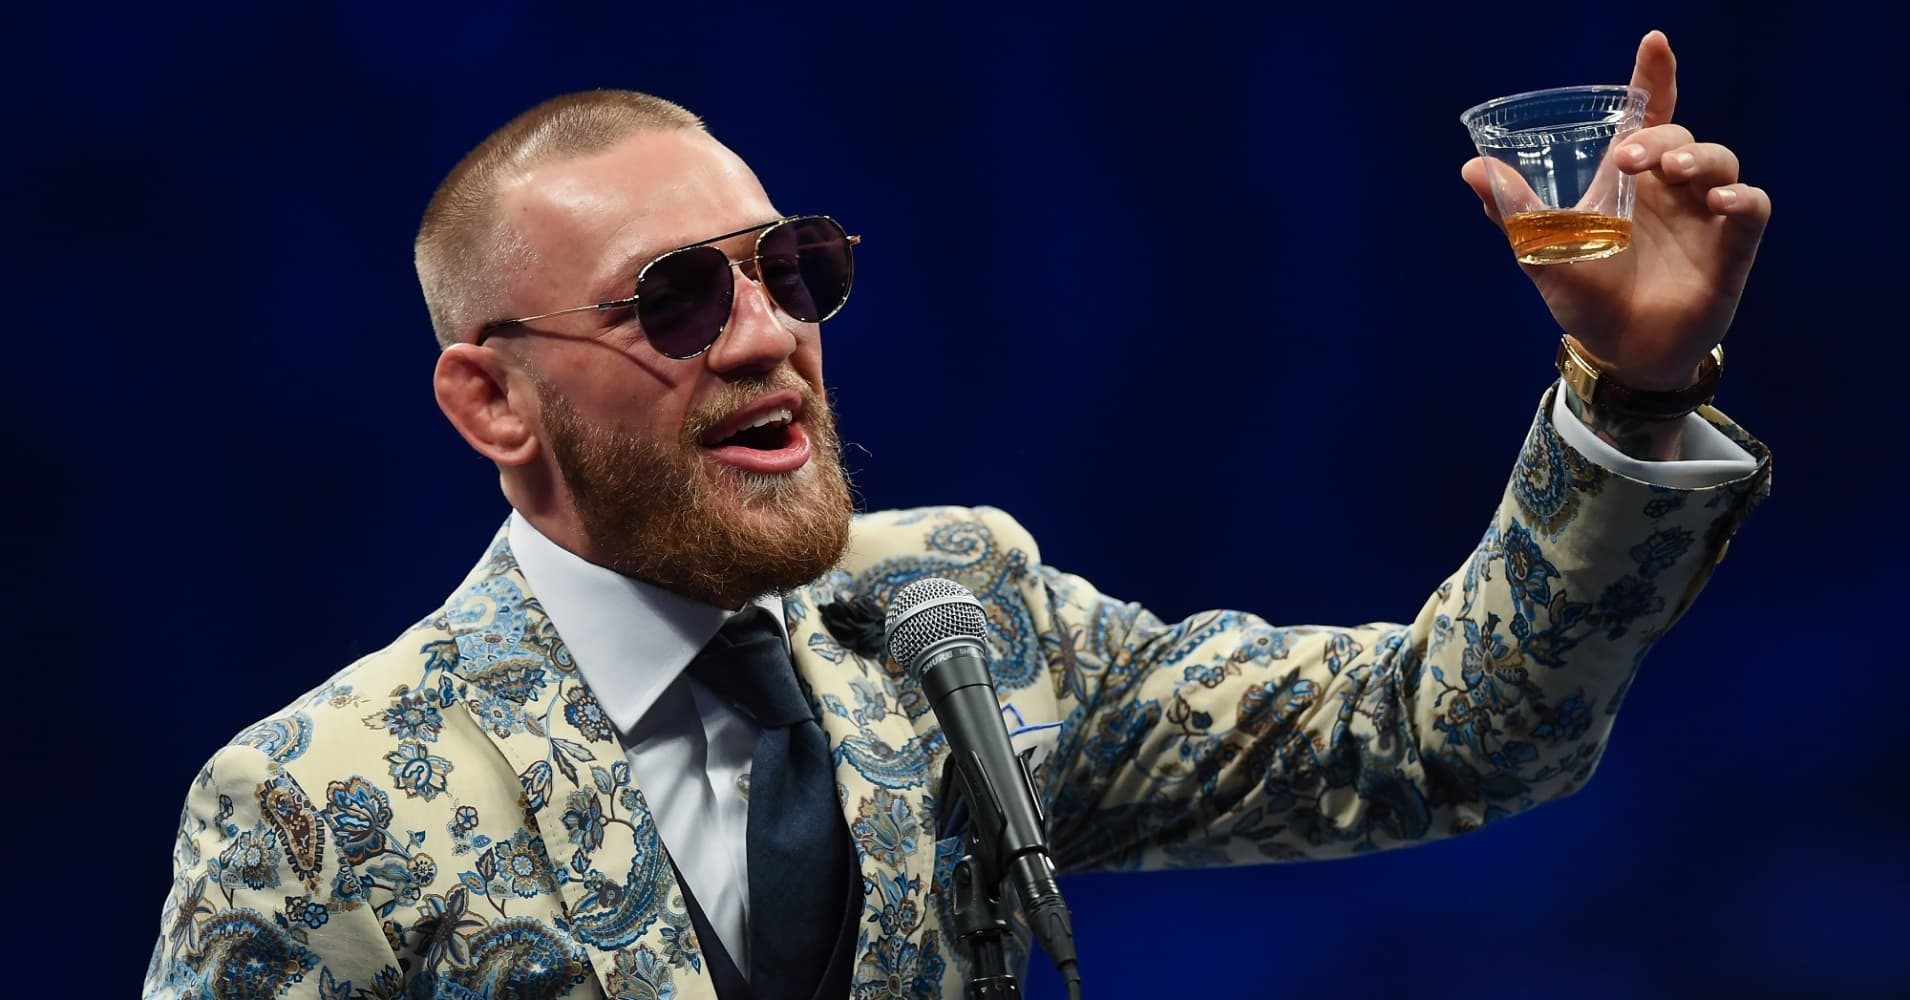 MMA fighter Conor McGregor went from welfare to millionaire — here's the simple trick that helped him get there